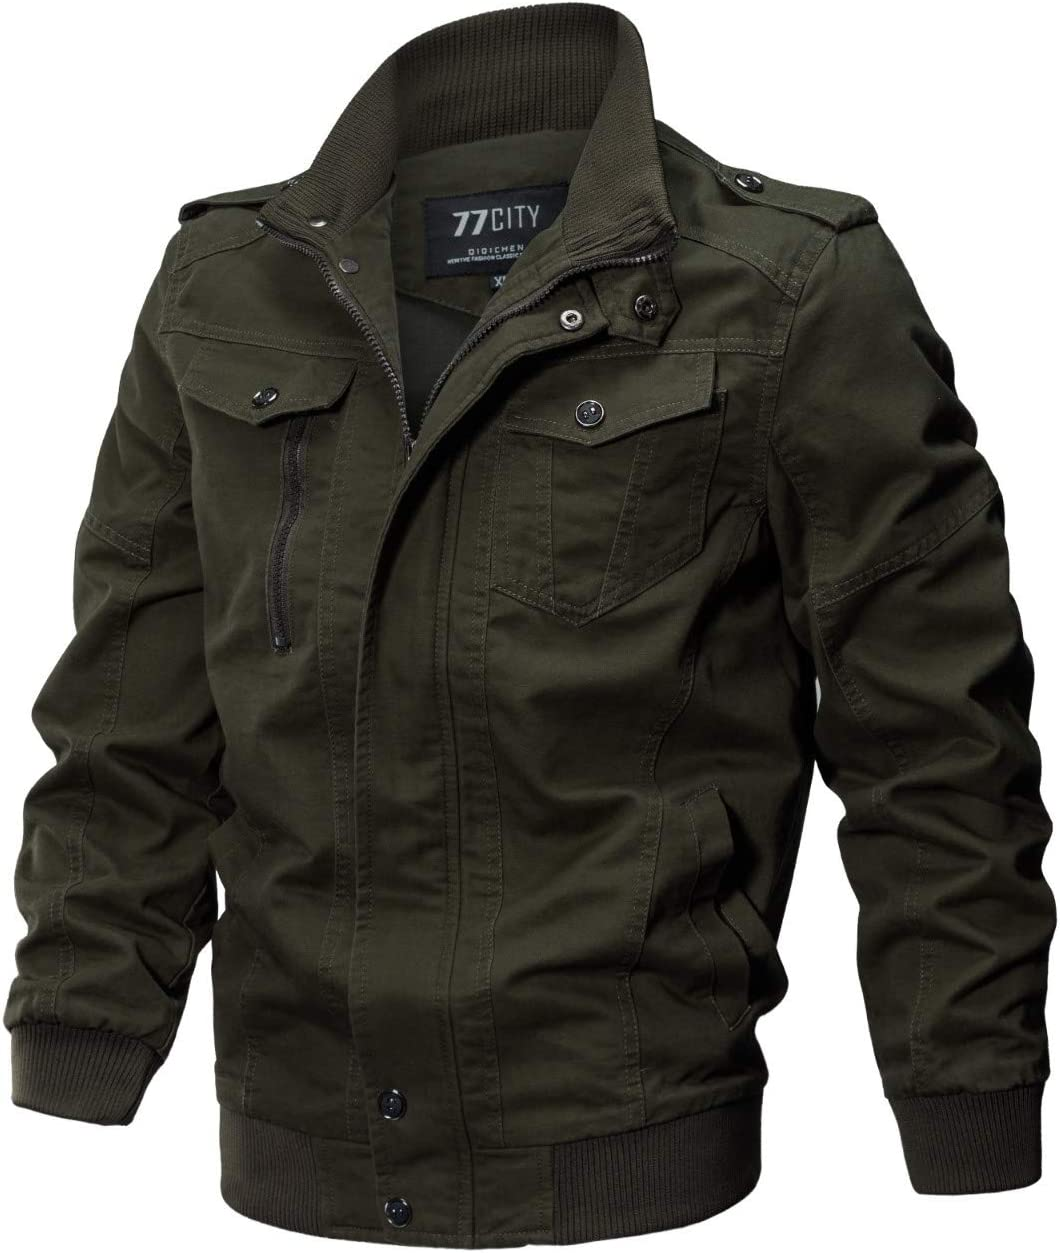 Men Winter Coats Big and Tall.Mens Clothing Jacket Coat Military Clothing Tactical Outwear Breathable Coat